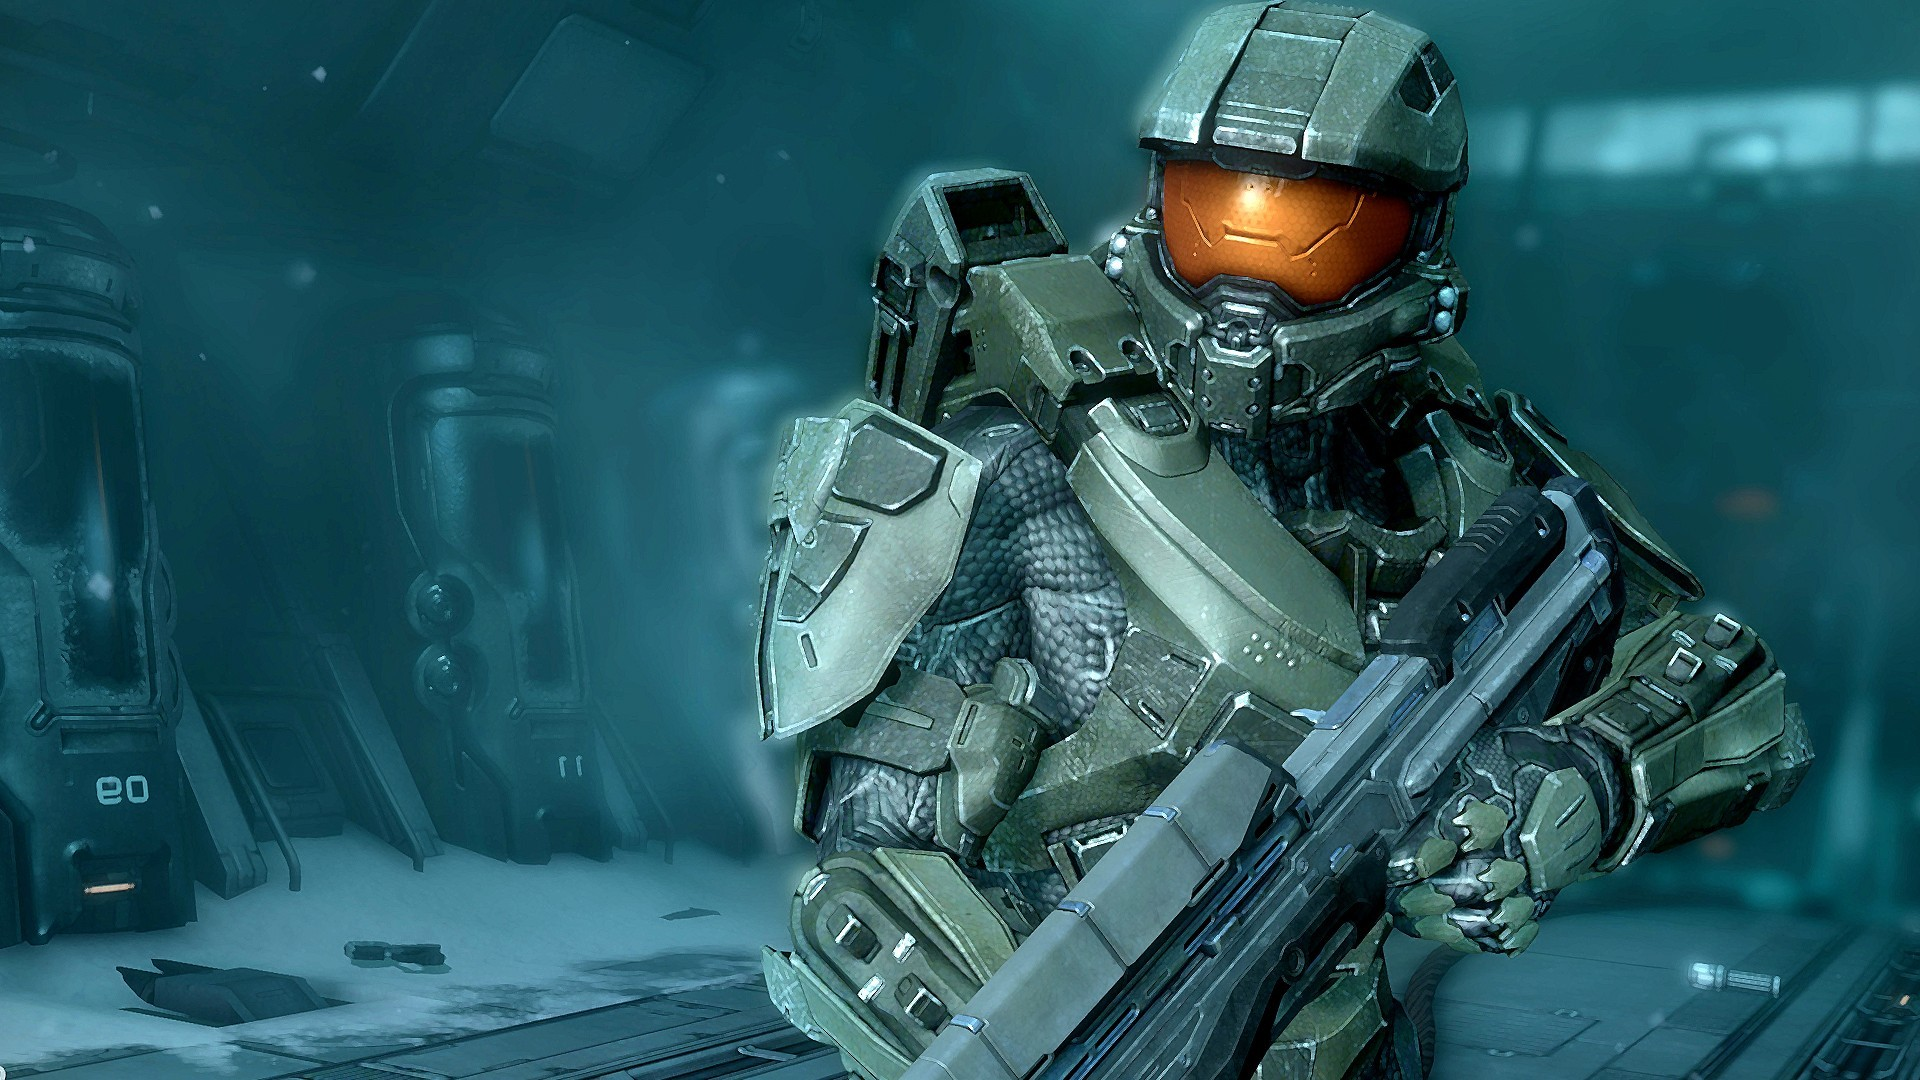 Video Games Master Chief Halo 4 Wallpaper   Halo 4 Master Chief 1920x1080